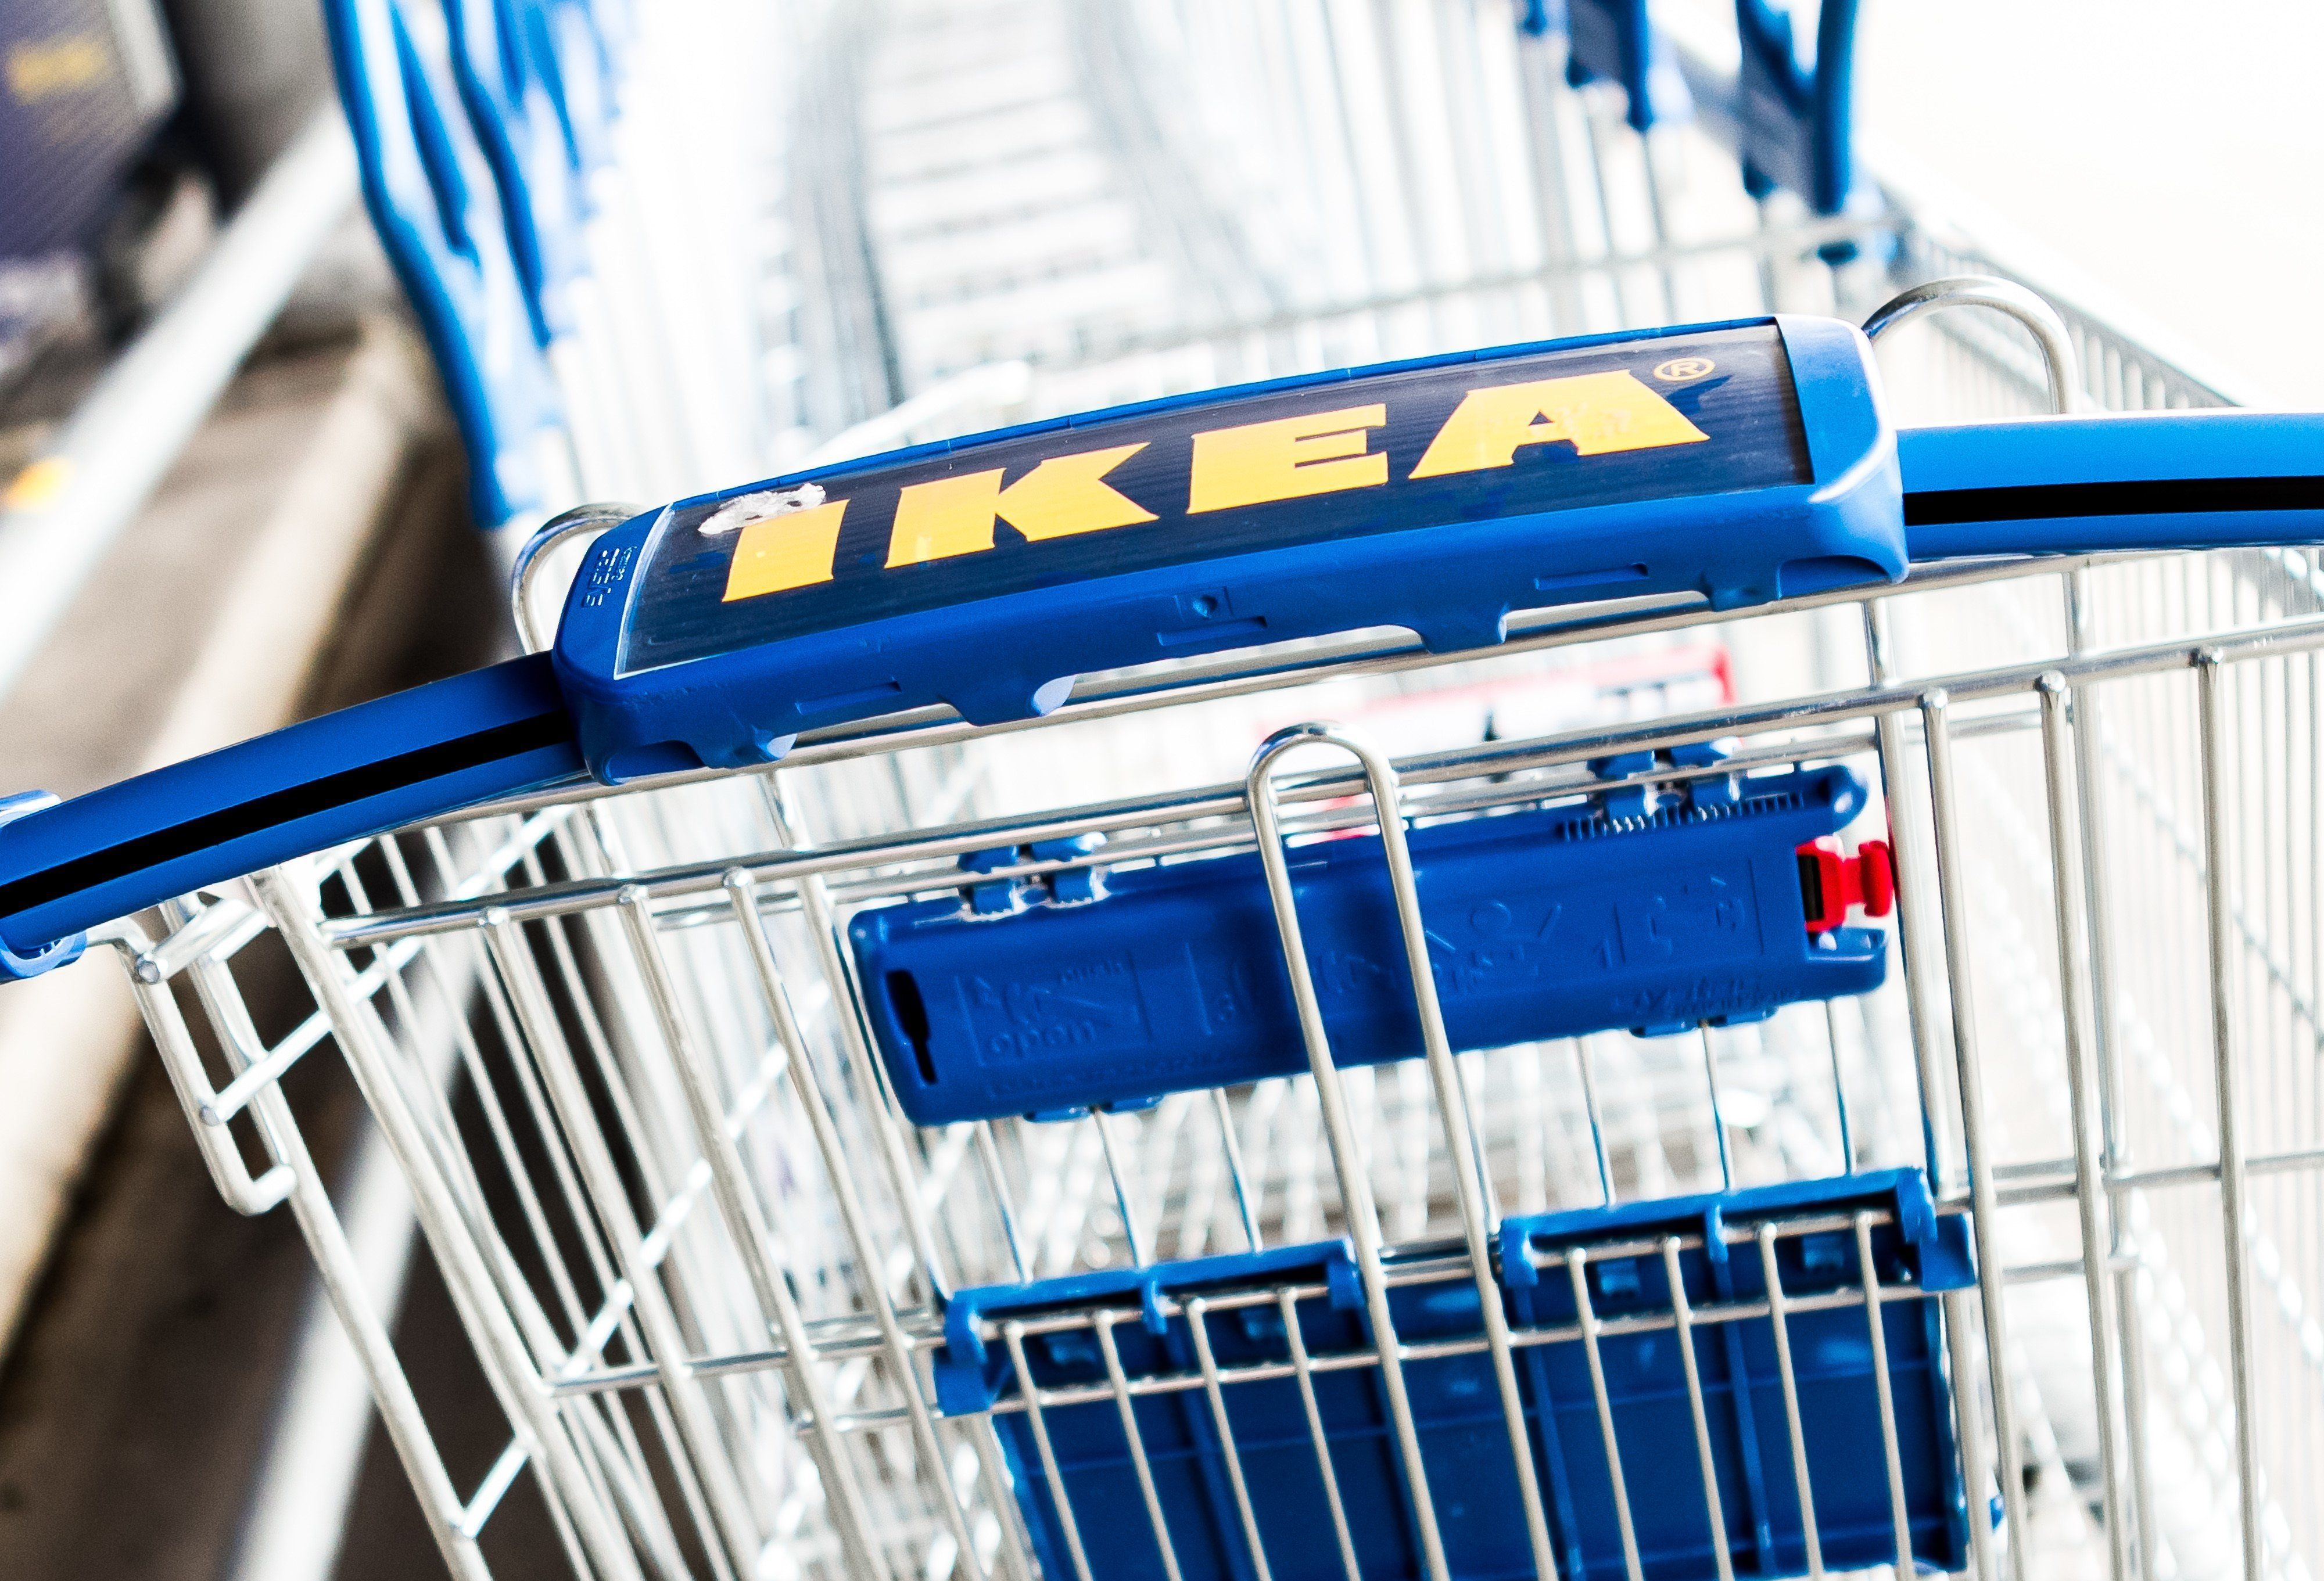 IKEA founder passes away - here are his 5 most iconic creations